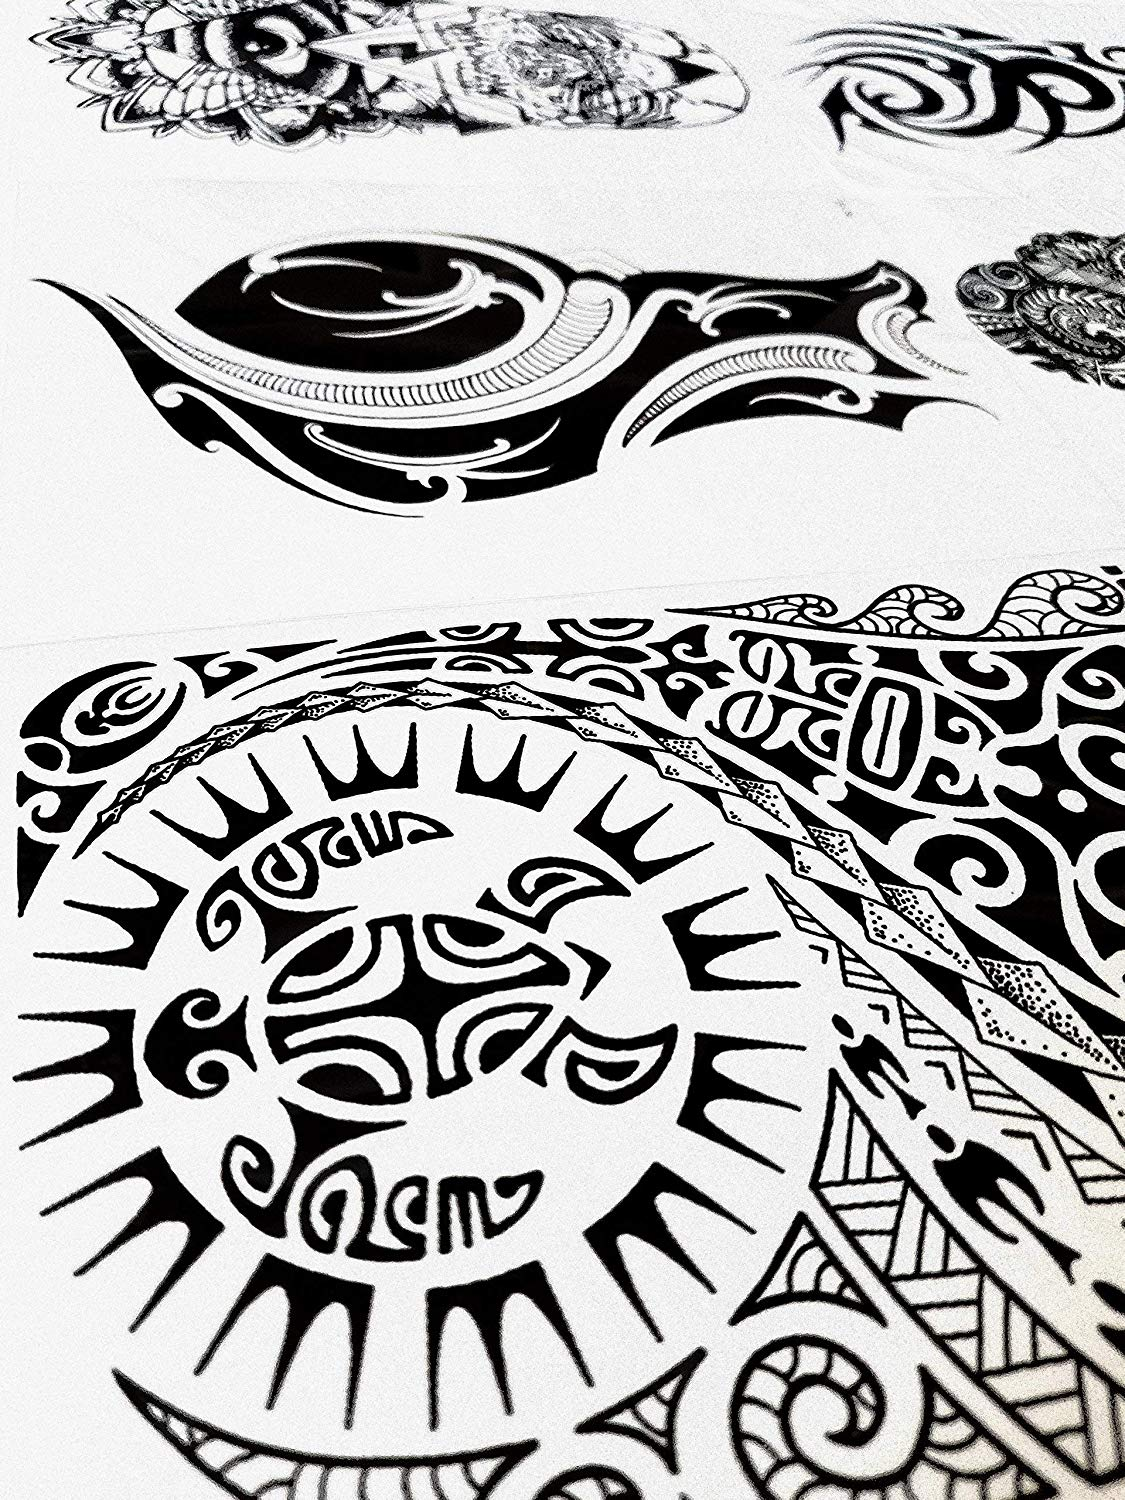 Gilded Girl 6 Large Tribal Temporary Tattoos Realistic Designs for Arm/Back/Shoulder Waterproof Body Art Removable Black Tattoo